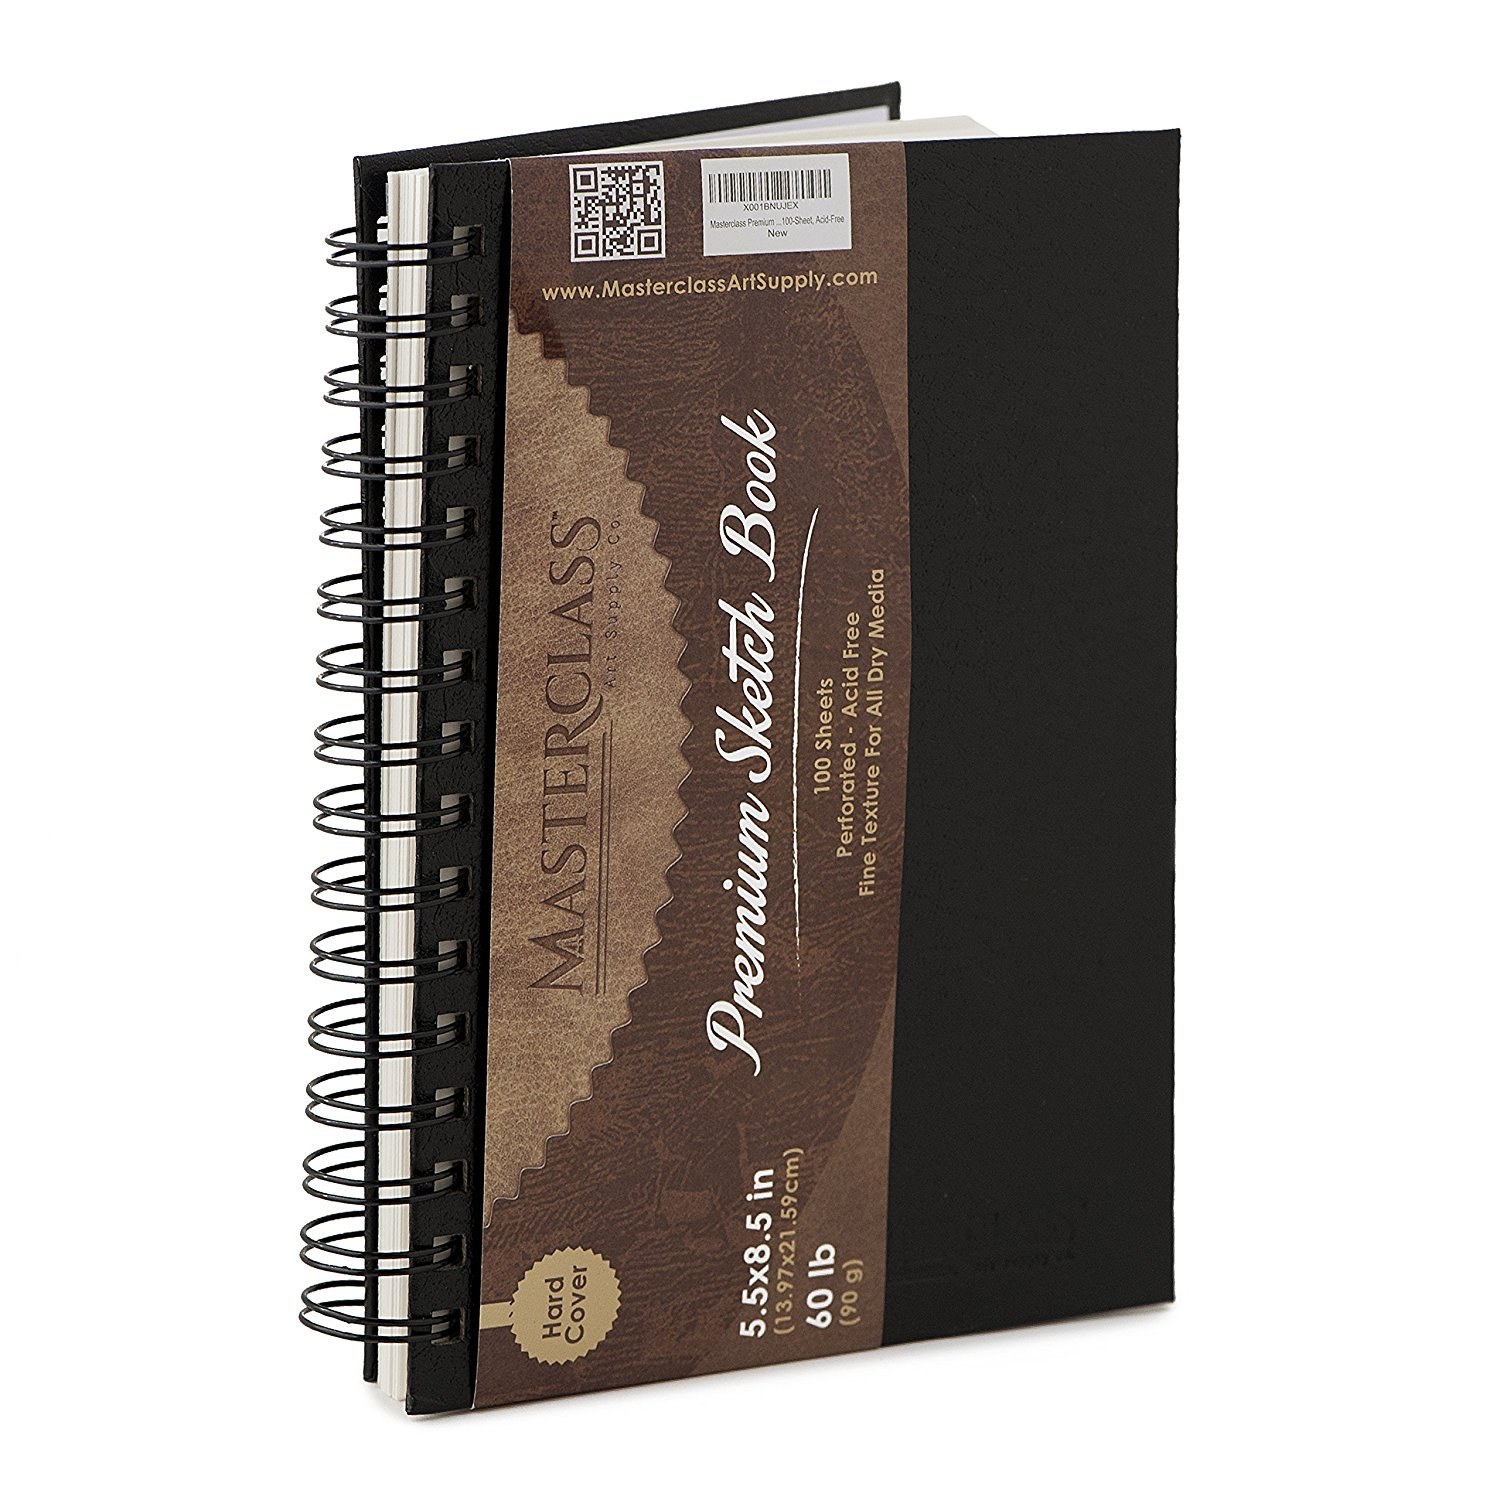 Masterclass Premium 5.5 Inch by 8 Inch Spiral Bound Hardcover Sketchbook, 100-Sheets, Acid-Free, Perfect Sketch Book For Traveling, Durable Cover And Binding Allow Your Drawing Pages To Lay Flat. …